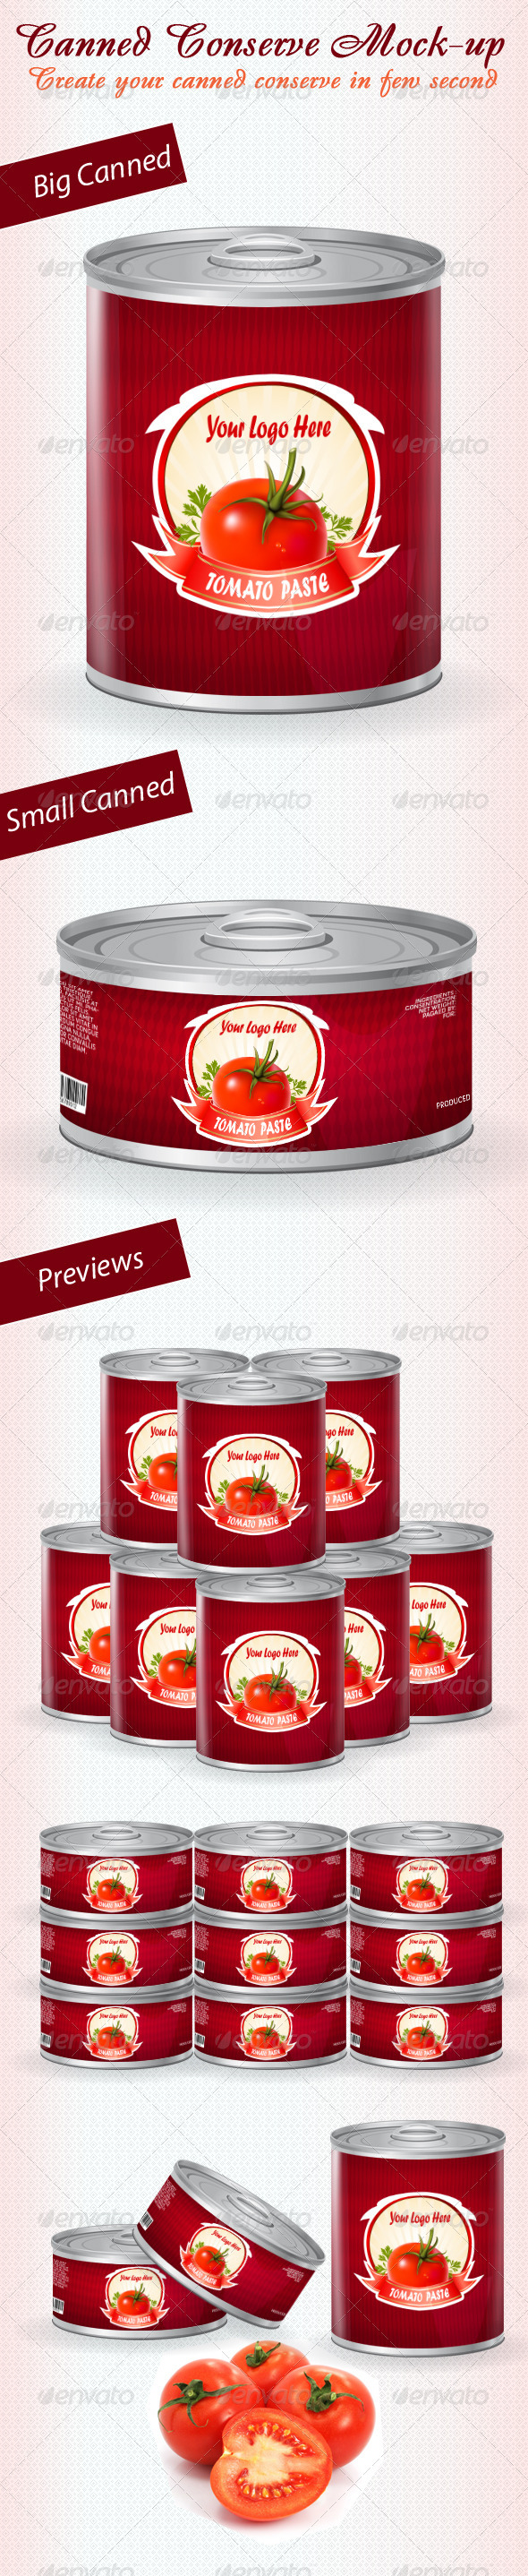 Canned Conserve Mock-up - Food and Drink Packaging